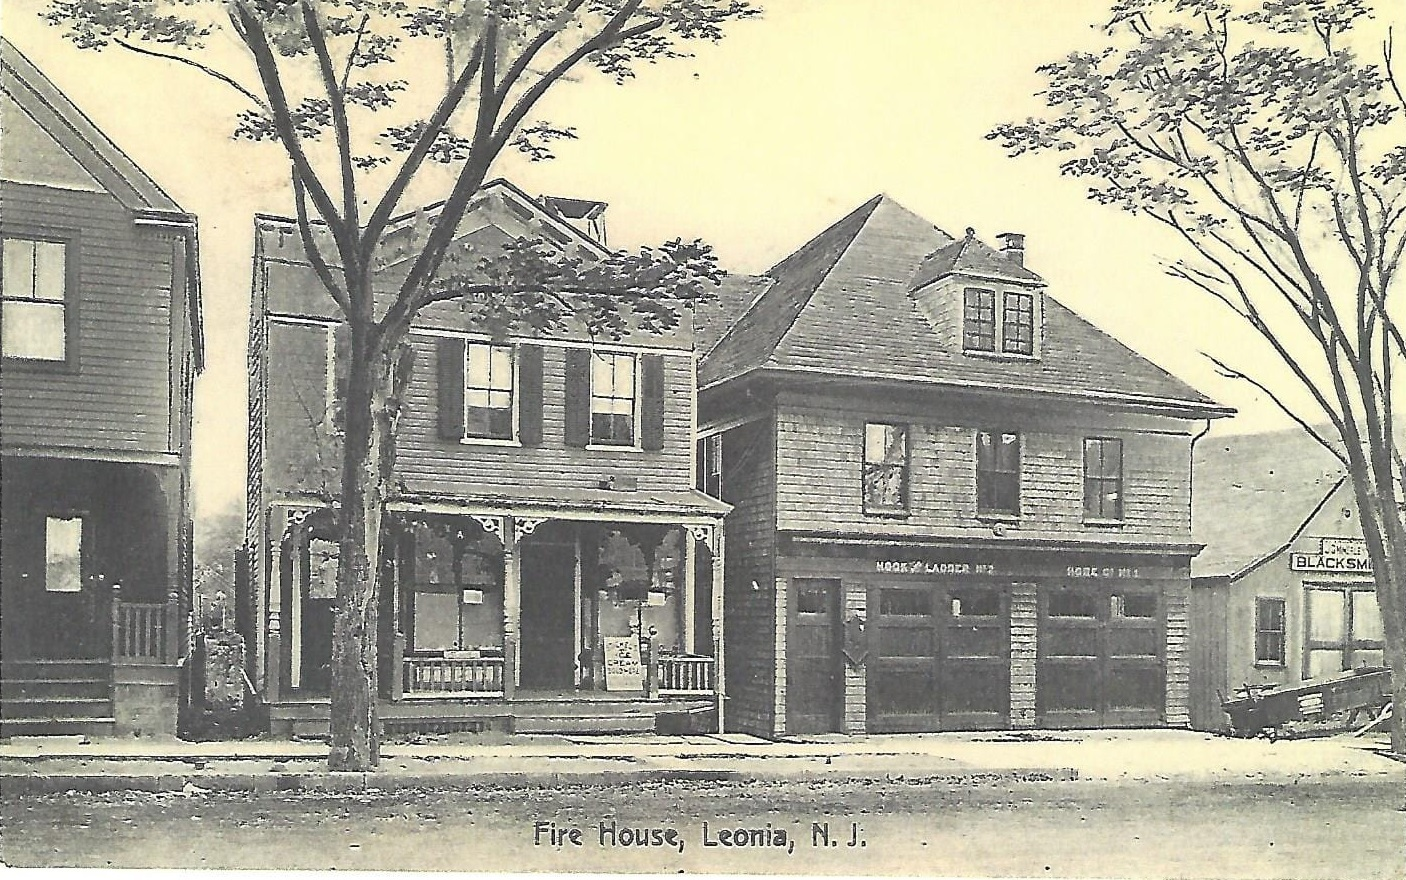 Store, Firehouse & blacksmith 1895 (postcard collection)